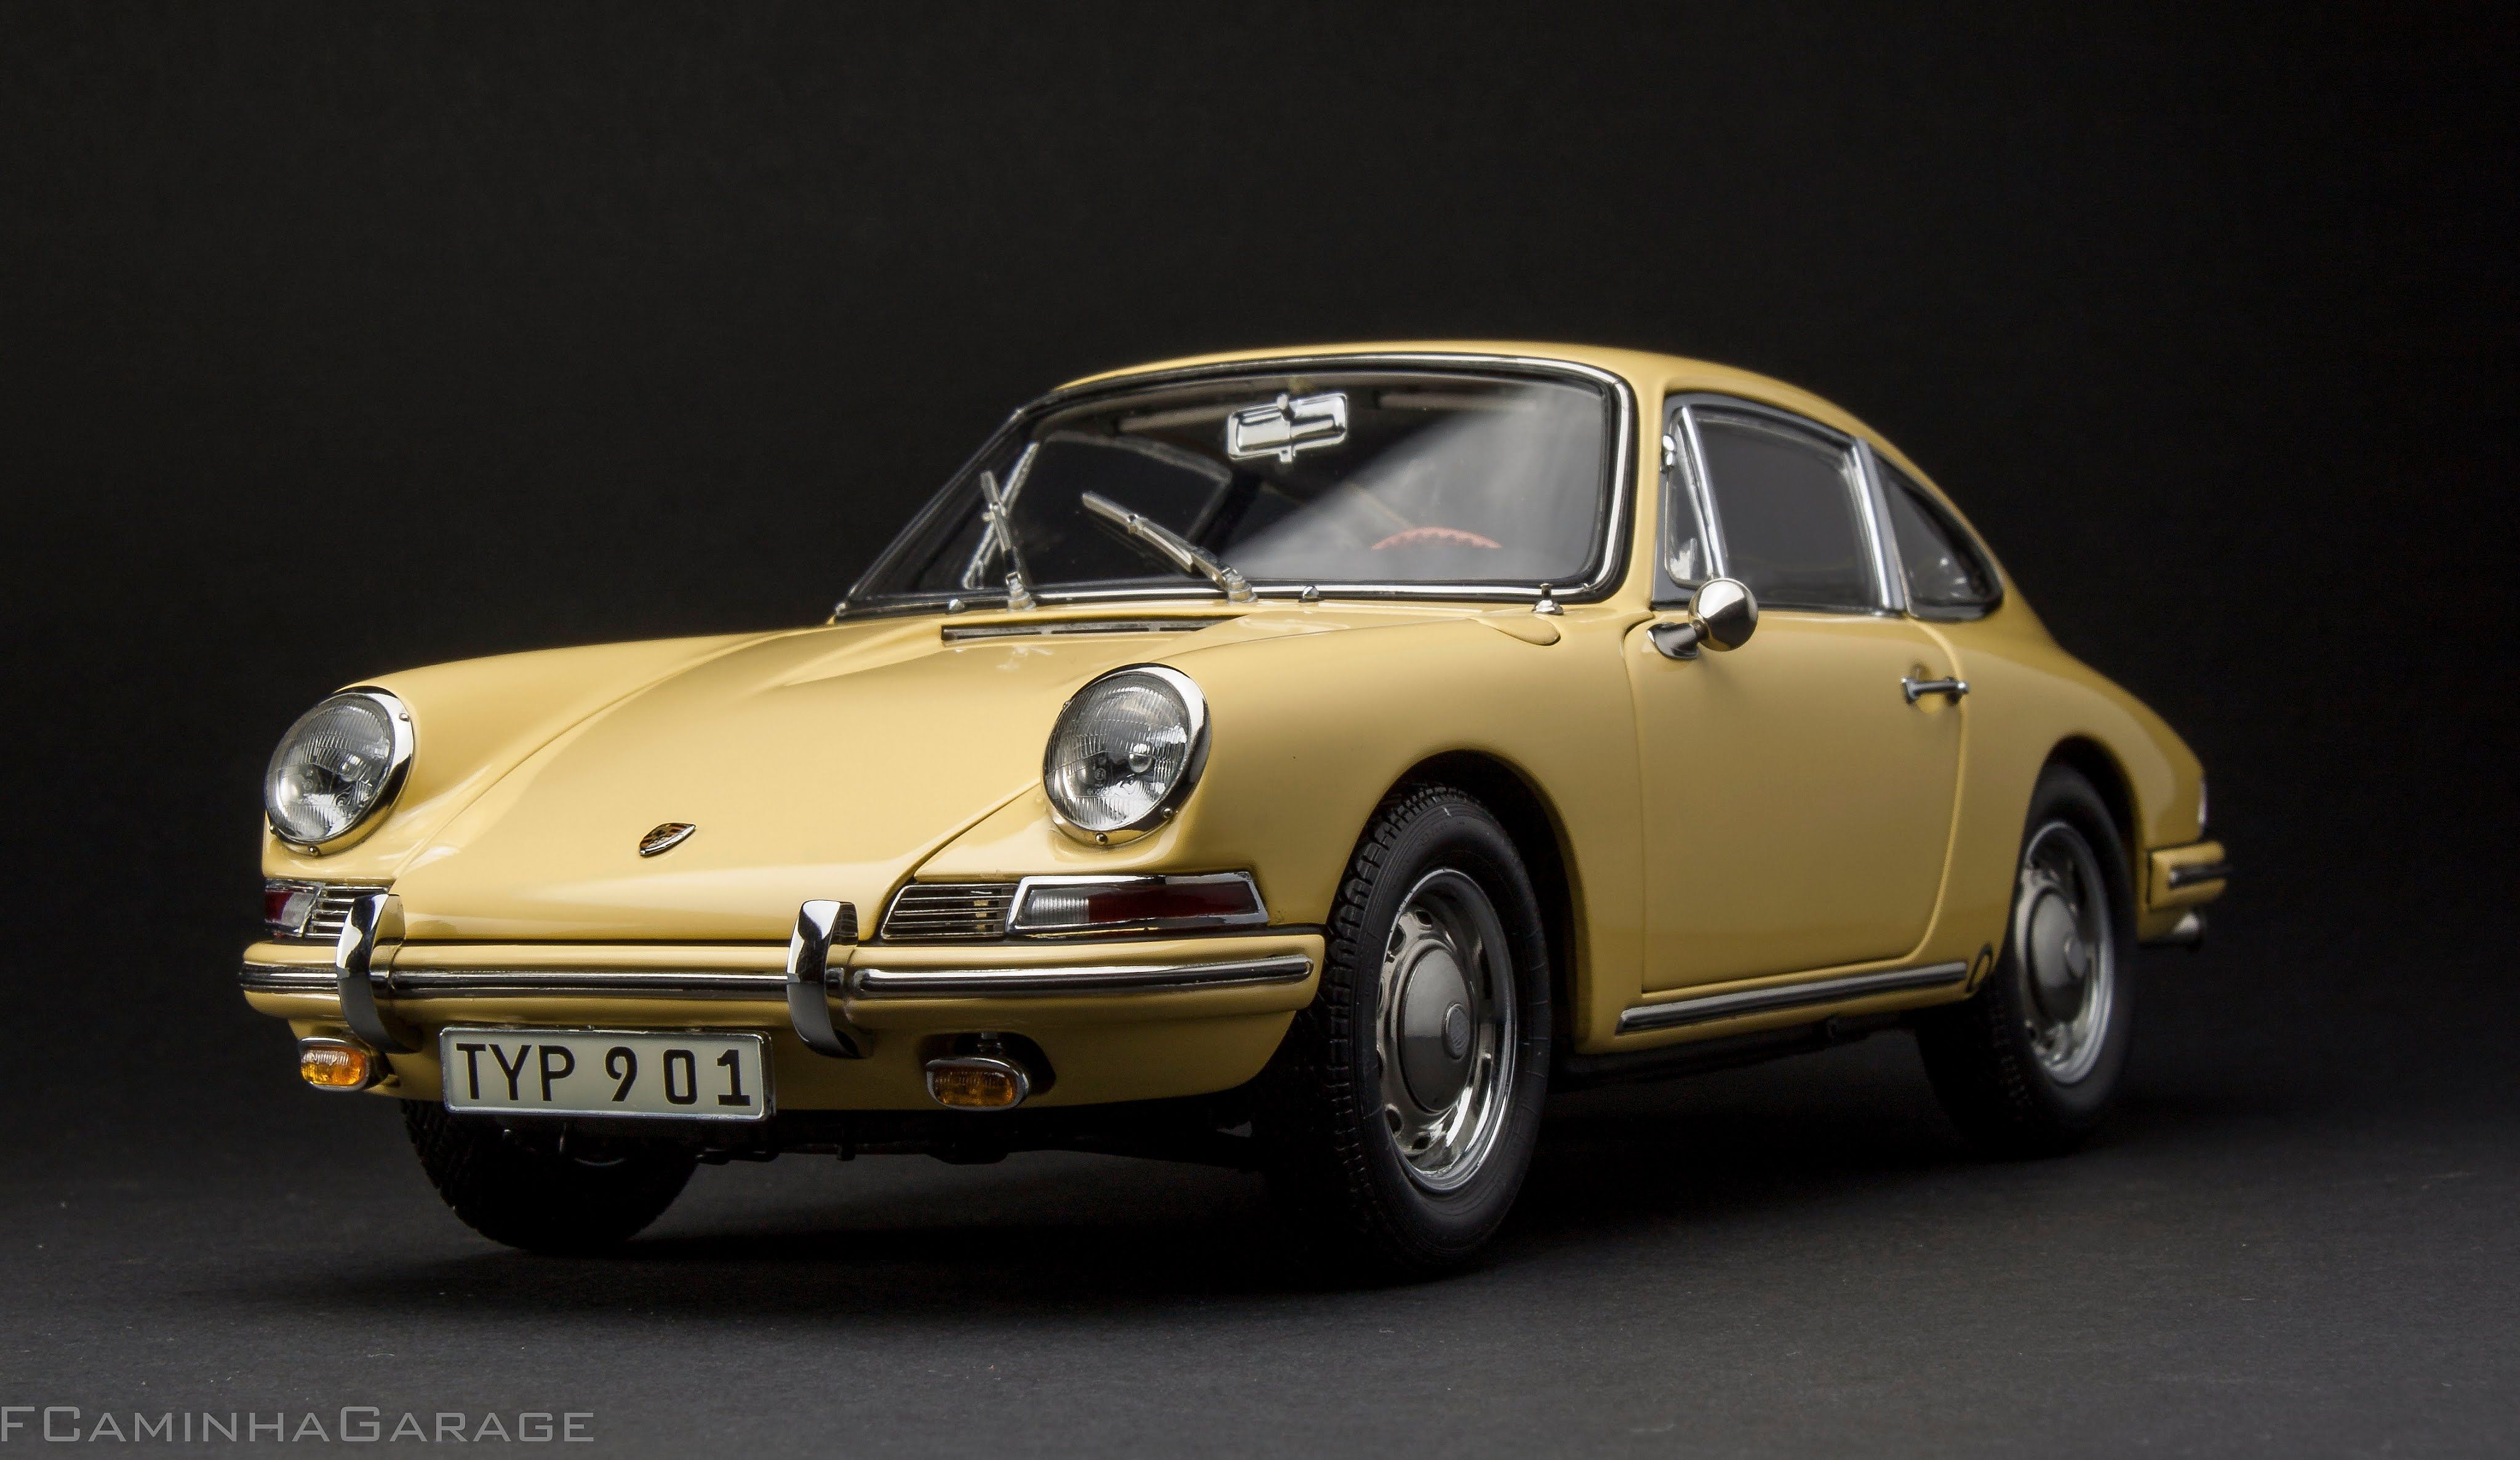 Porsche Type 901 Fcaminhagarage 1 18 1964 In 1973 912 Coupe Of Engine Champagne Yellow Le 5000 By Cmc The End 50s Had Started Development